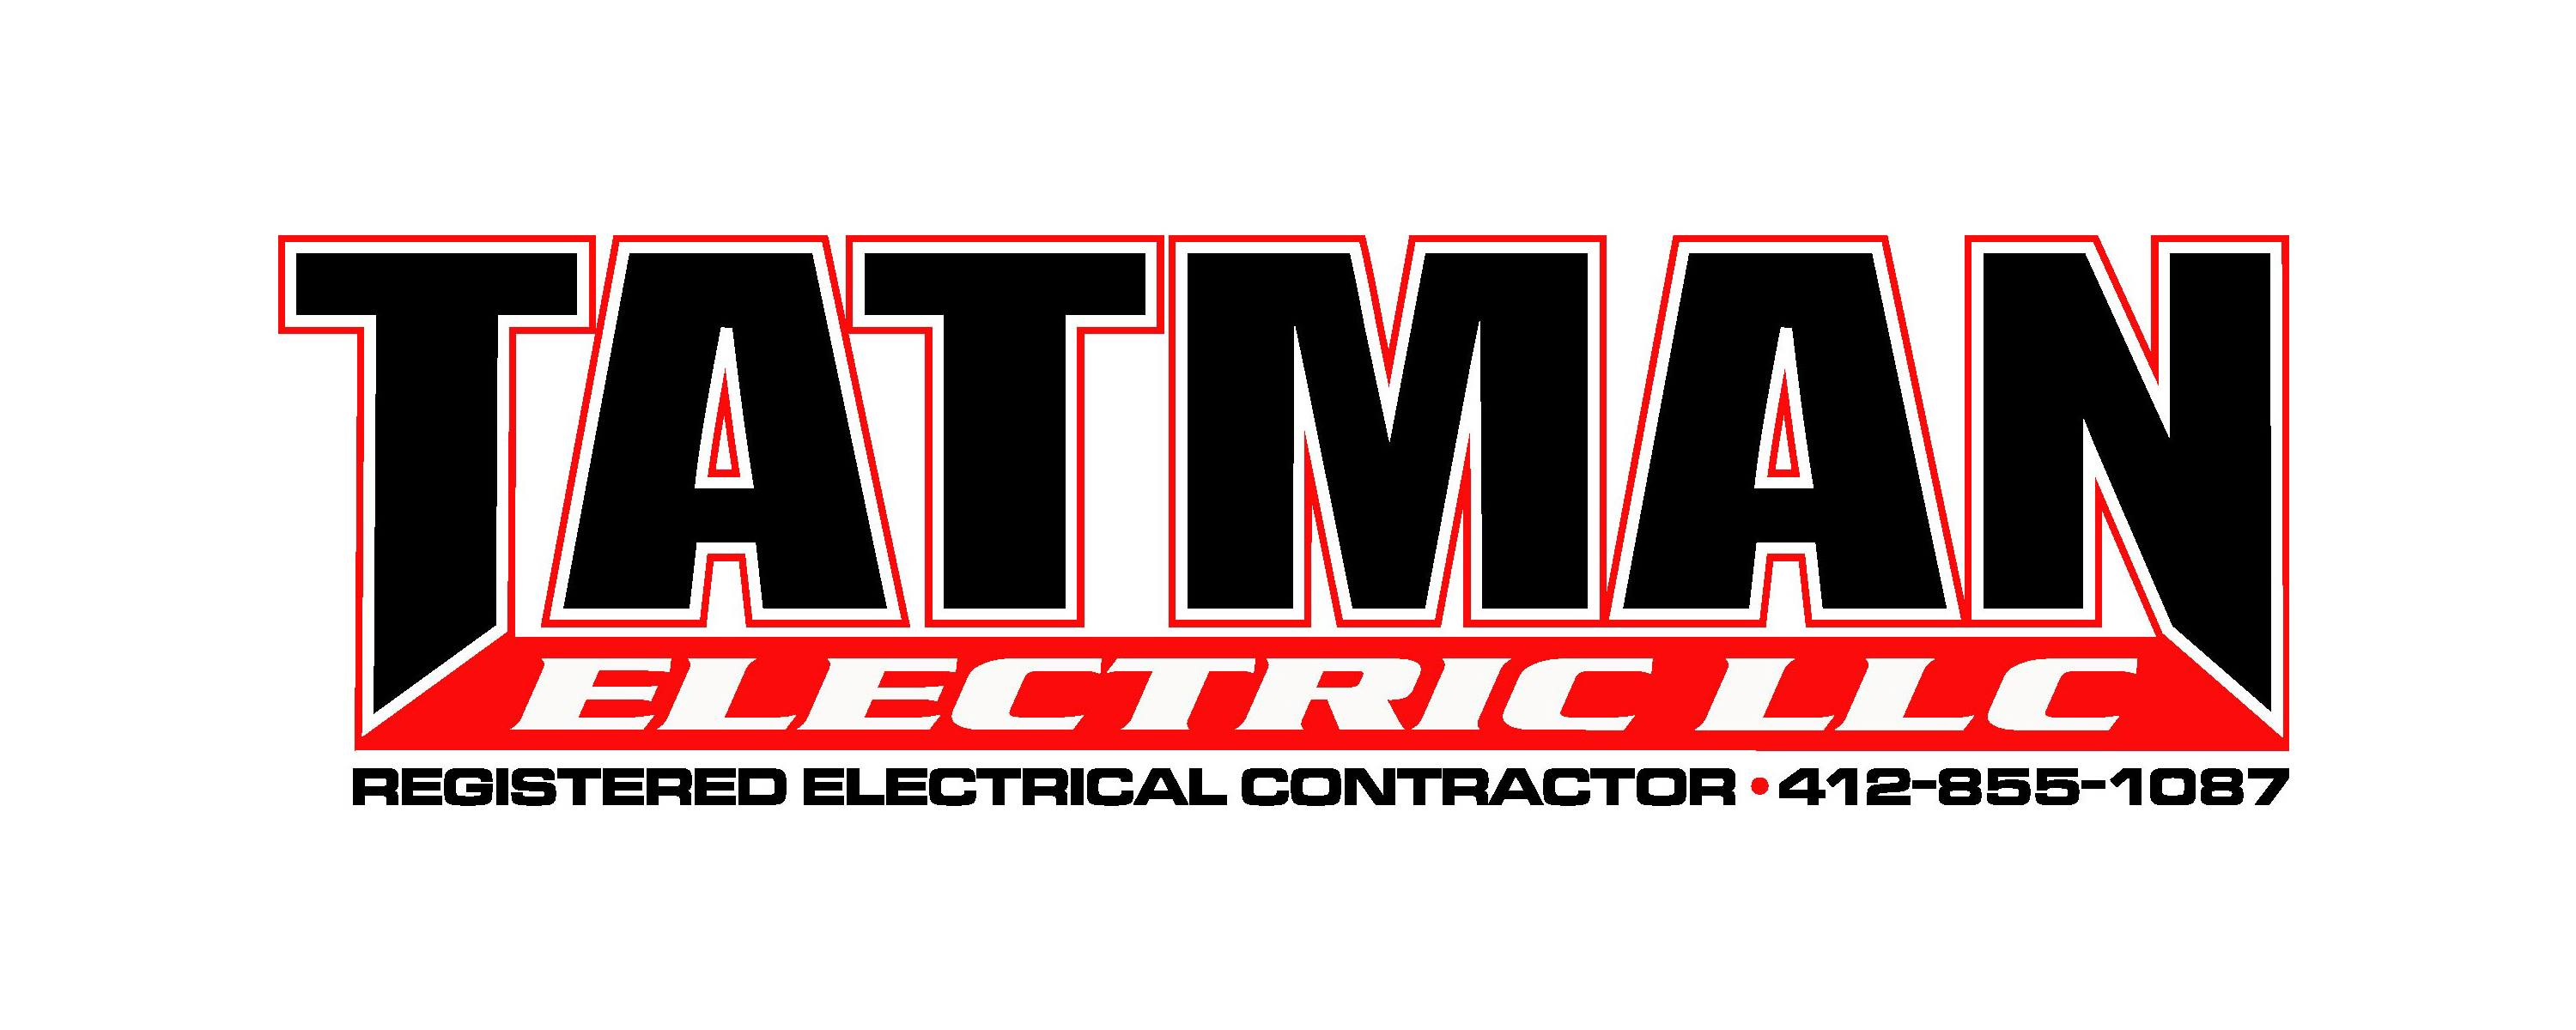 electrical contractors; pittsburgh electricians near me; best electrical contractor company near me pittsburgh; Electricians wiring residential electrical outlets pittsburgh; Pittsburgh residential electric contractors;